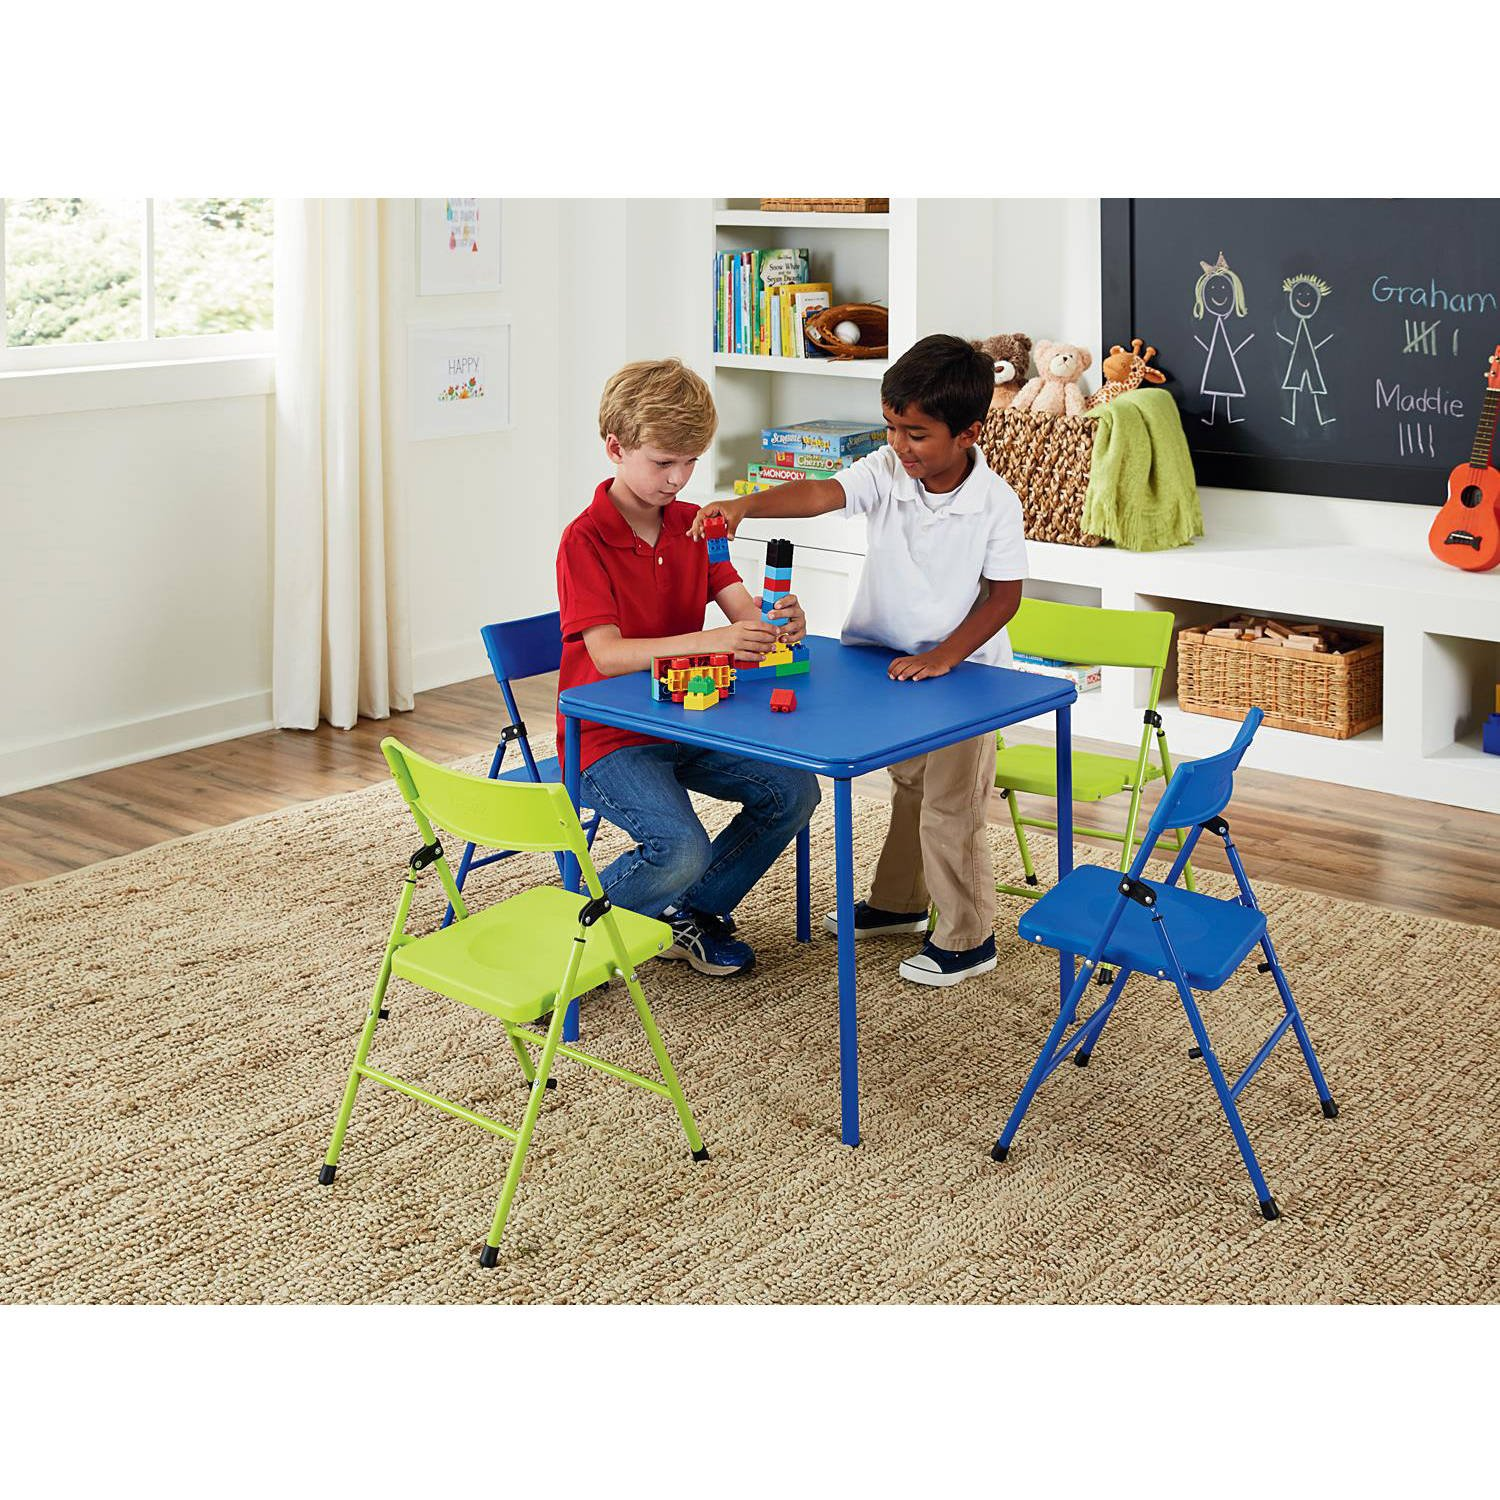 Multi-functional Cosco Kid's 5 Piece Folding Chair and Table Set, Blue and Lime Green